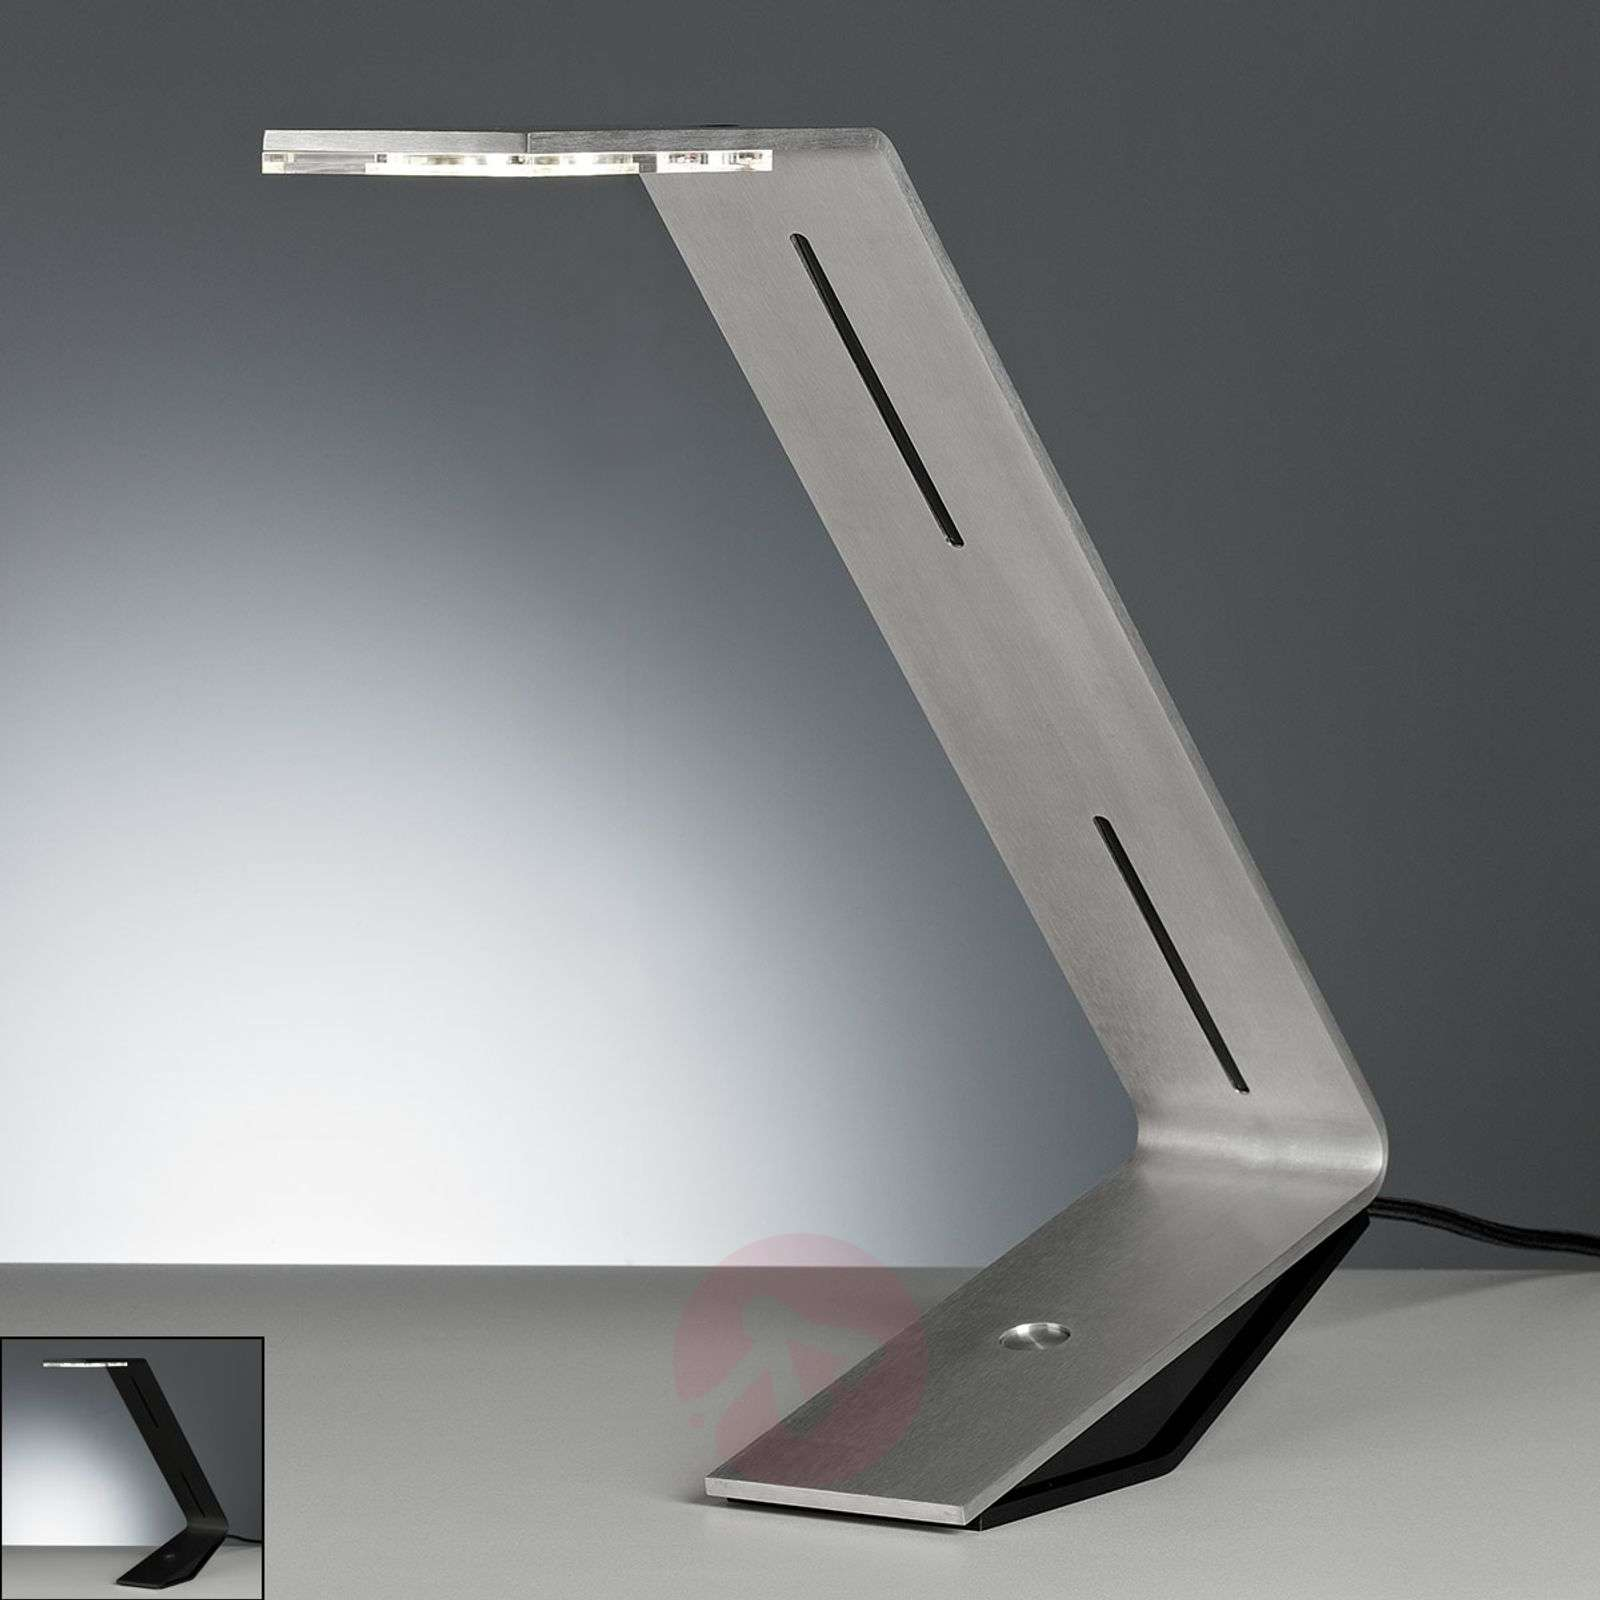 Futuristic-looking LED table lamp Flad-9030192X-01